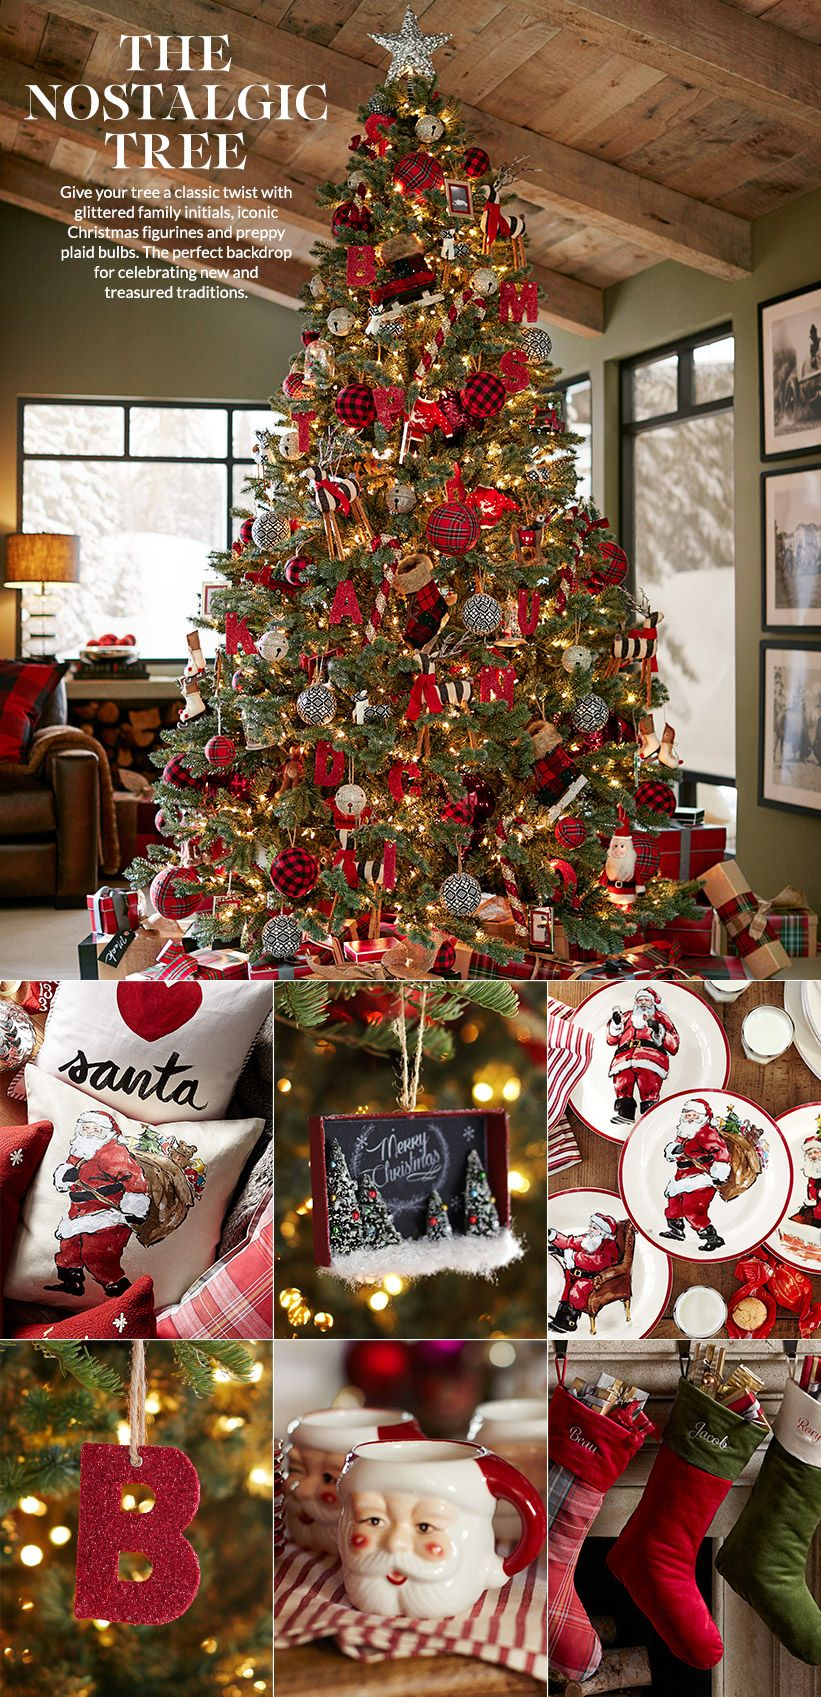 christmas decor christmas tree theme traditional nostalgic theme red and black gingham pottery barn - Nostalgic Christmas Decorations